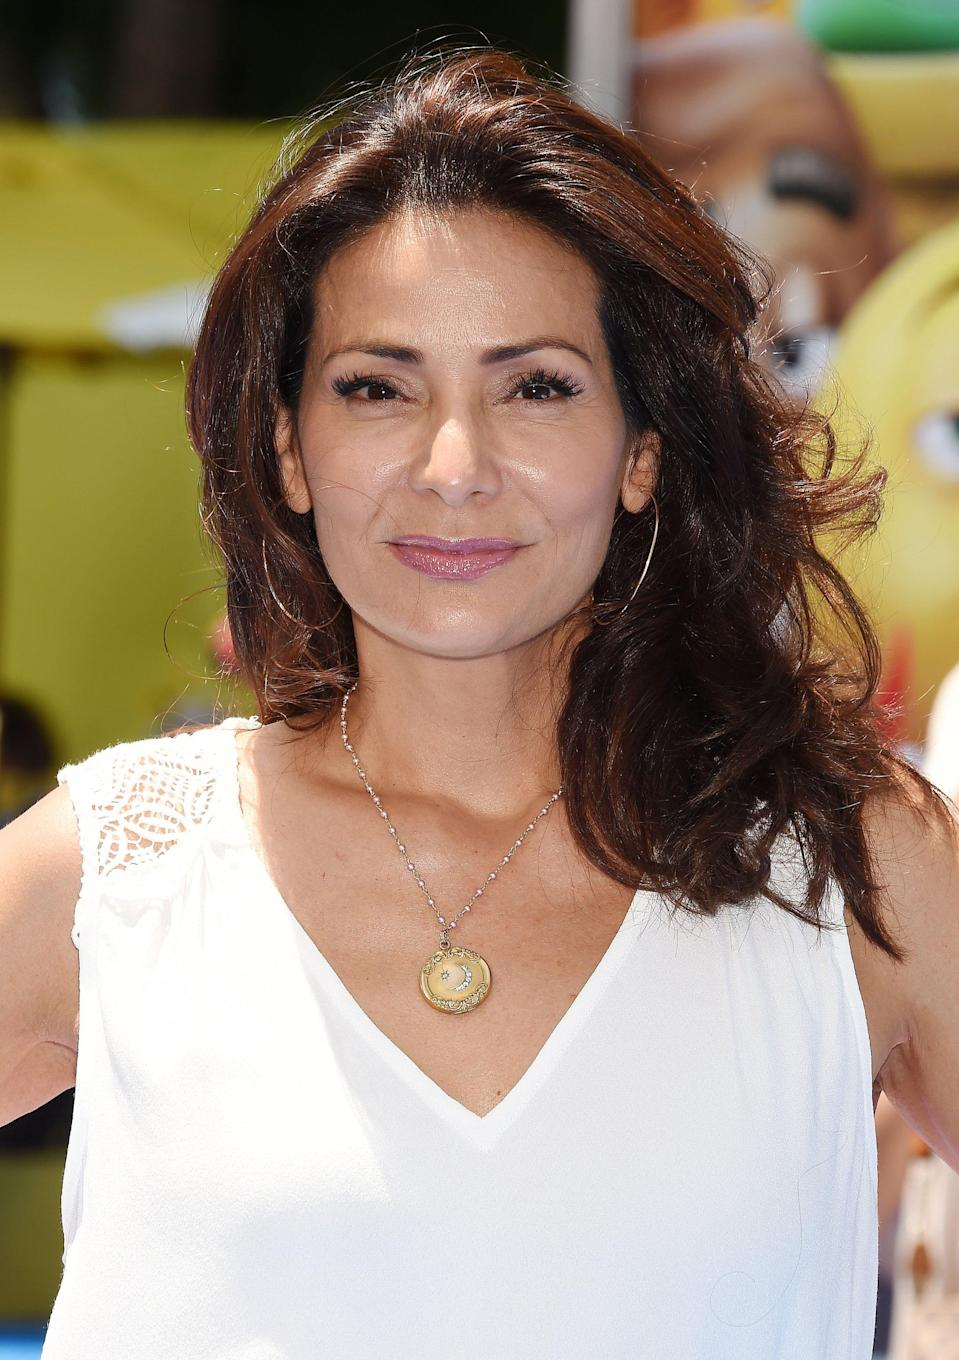 <p>Constance was the mom we all wanted to have when she played Marcella Quintanilla. After that, she became Angie Lopez on the hit ABC sitcom <strong>George Lopez</strong> for five years. Constance moved on to portray Regina Vasquez on Freeform's <strong>Switched at Birth</strong> and is voicing Doña Paloma on <strong>Elena of Avalor</strong>.</p>